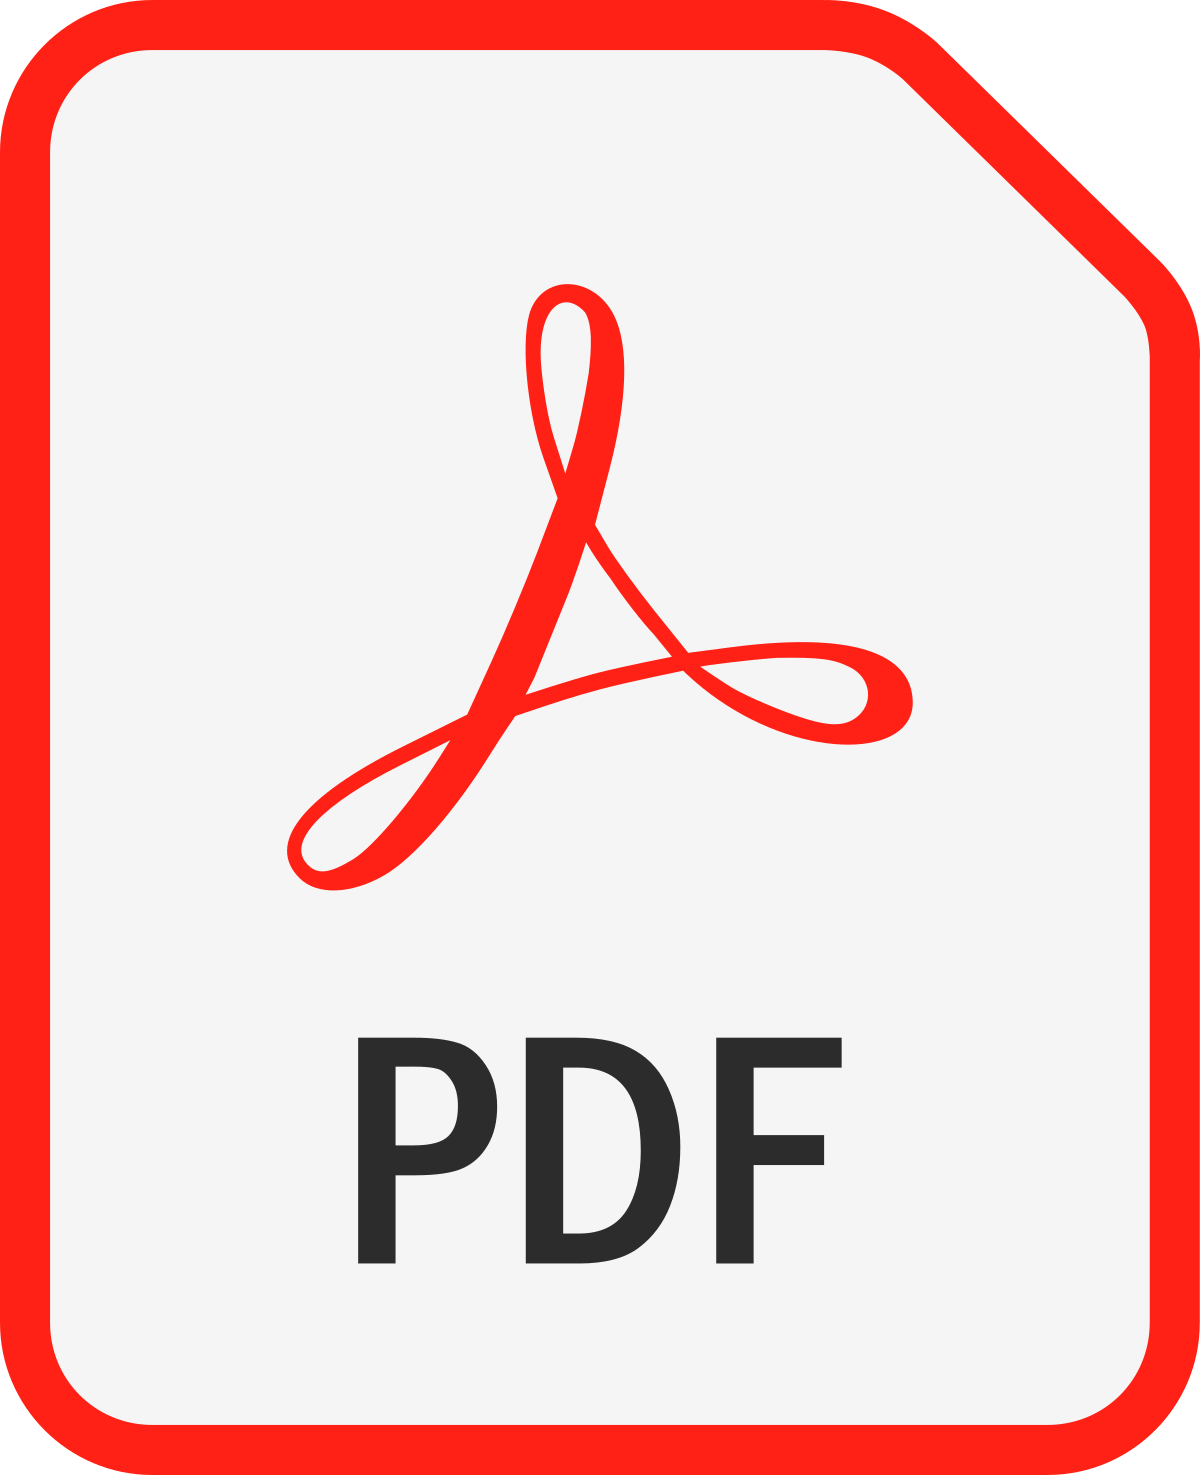 Webform module now supports printing PDF documents - Drupal